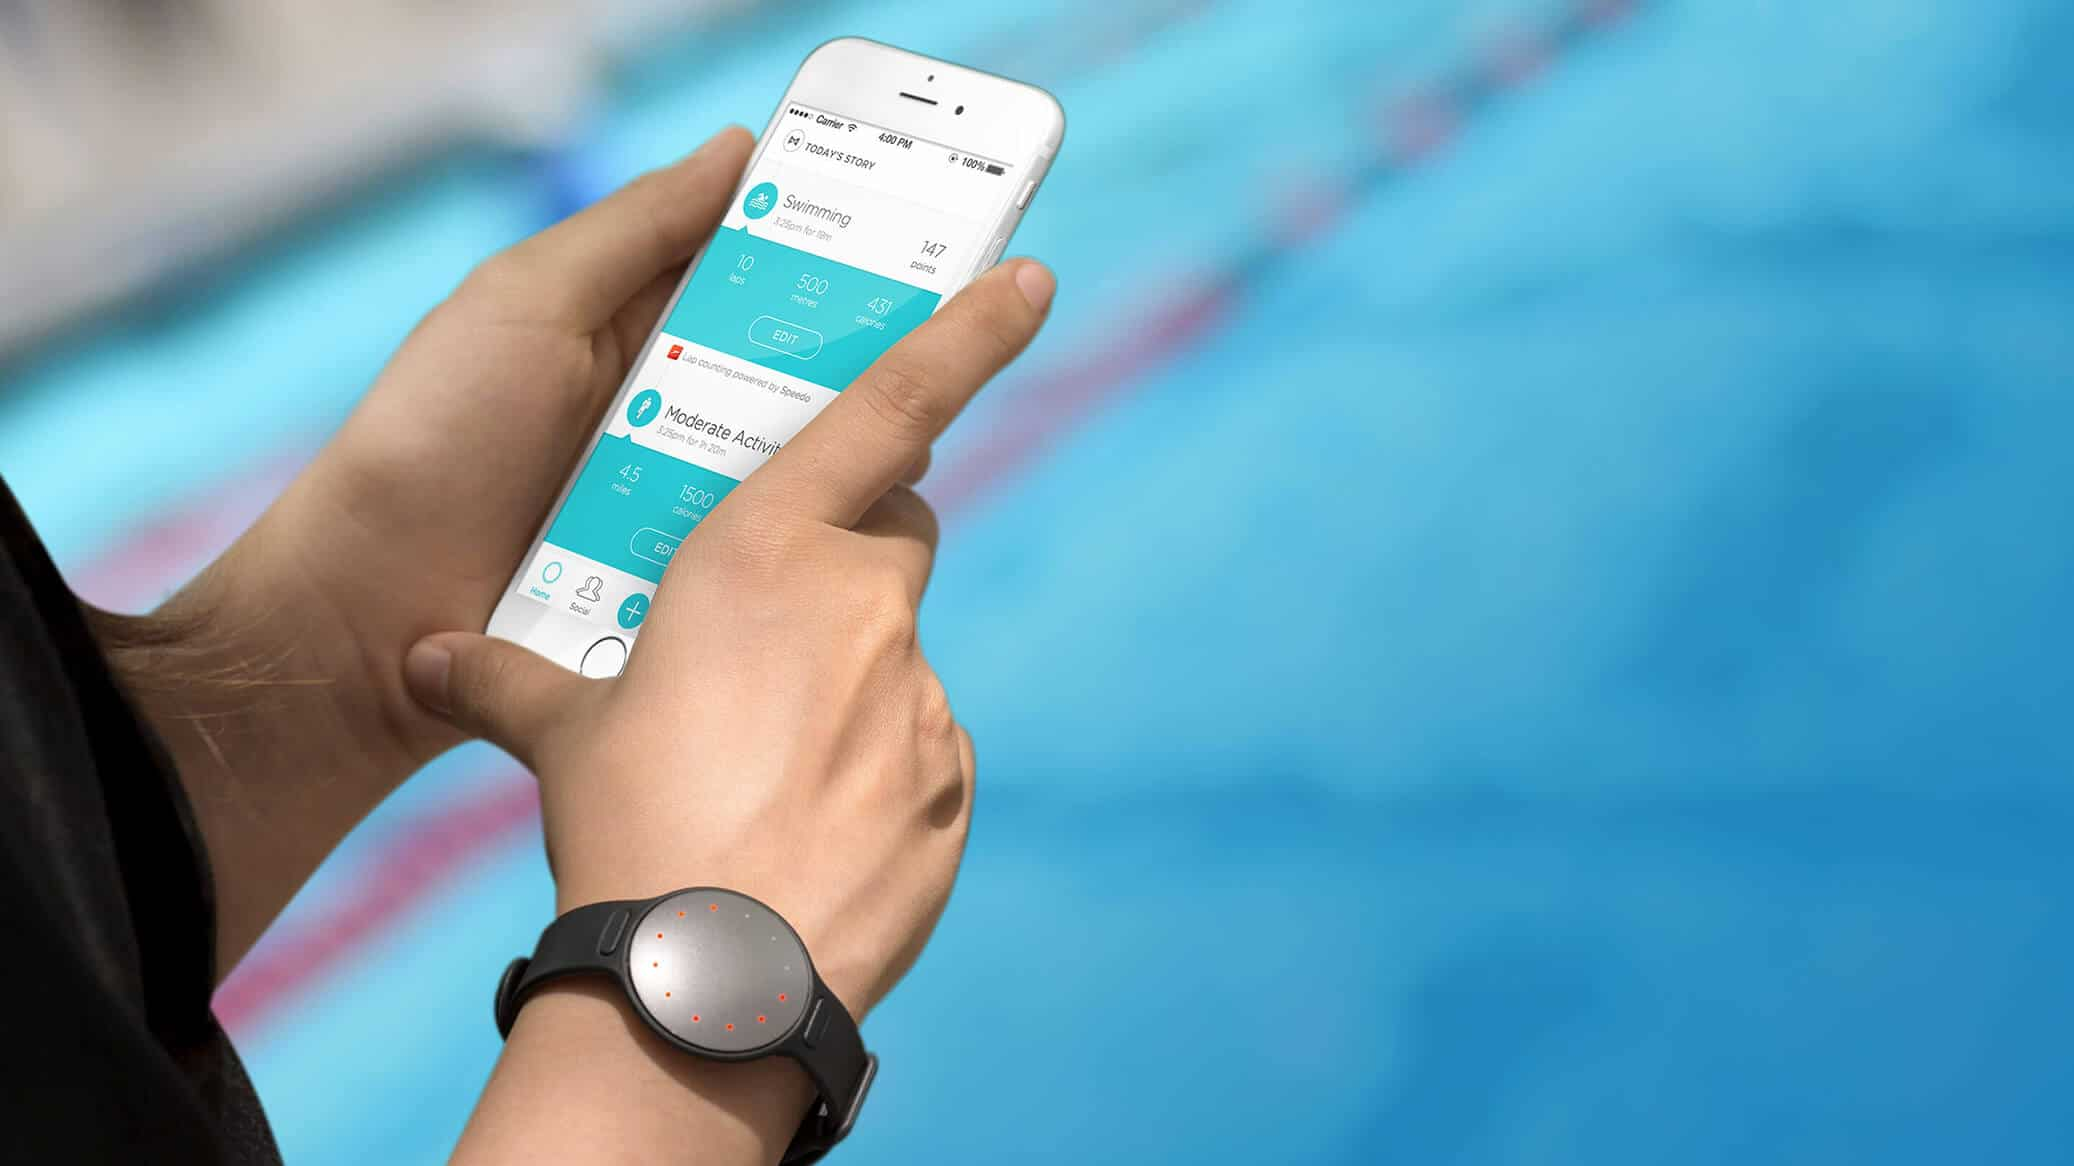 misfit makes a splash with new swim tracker 2 - Misfit makes a splash with new swim tracker